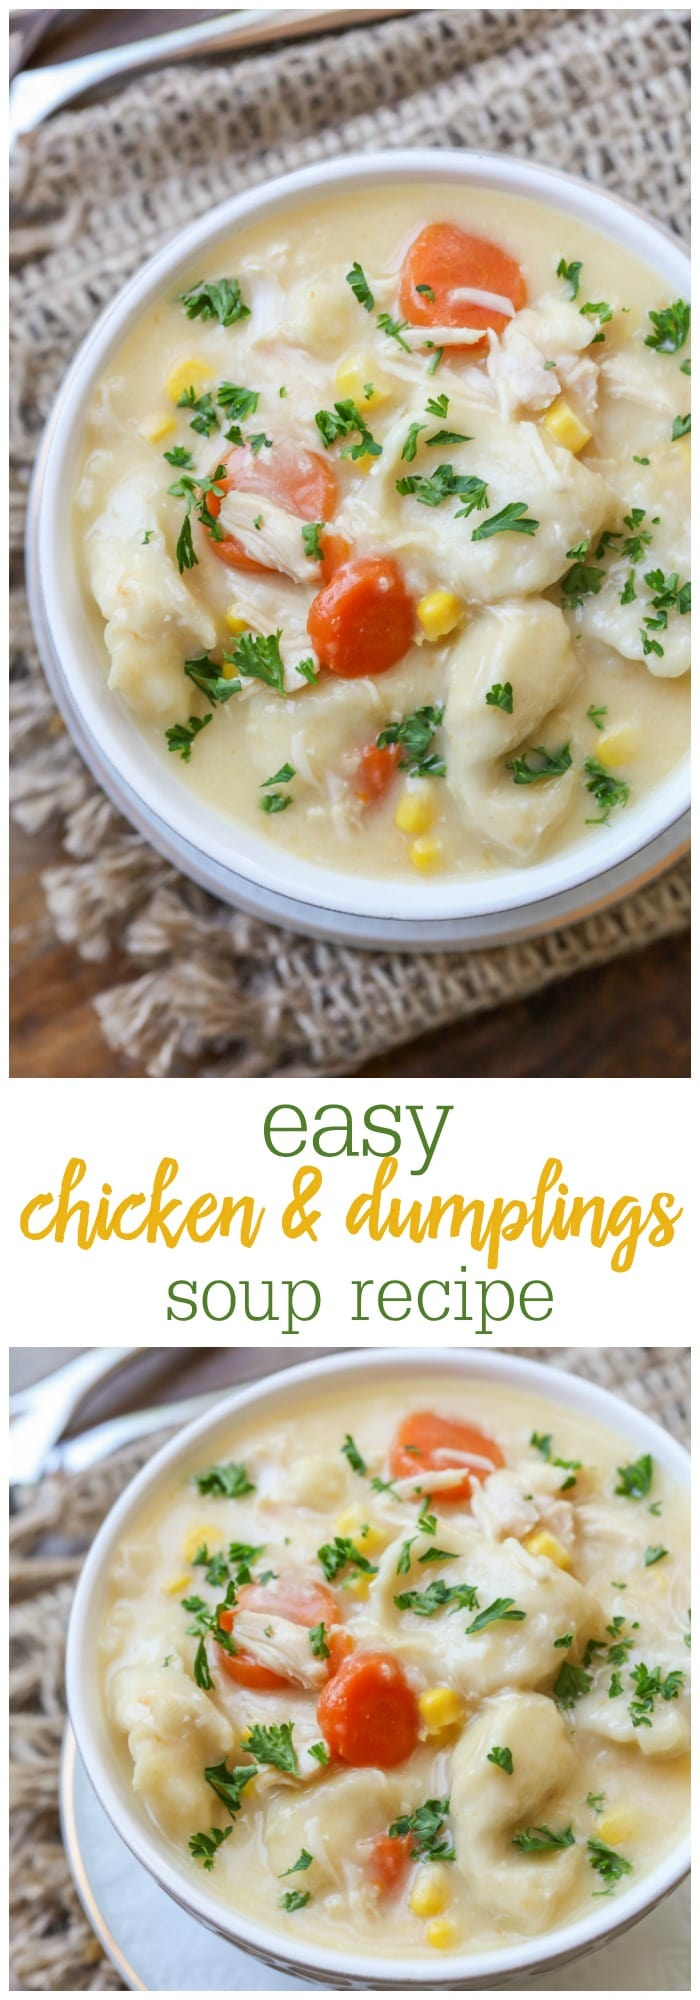 Chicken and Dumplings – a deliciously creamy and hearty chicken stew with celery, peas and carrots and savory flavor plus a hint of heat from cayenne pepper. It is added with balls of tender, light and biscuit-like dumpling to complement the creamy stew. A perfect filling meal to warm your soul.